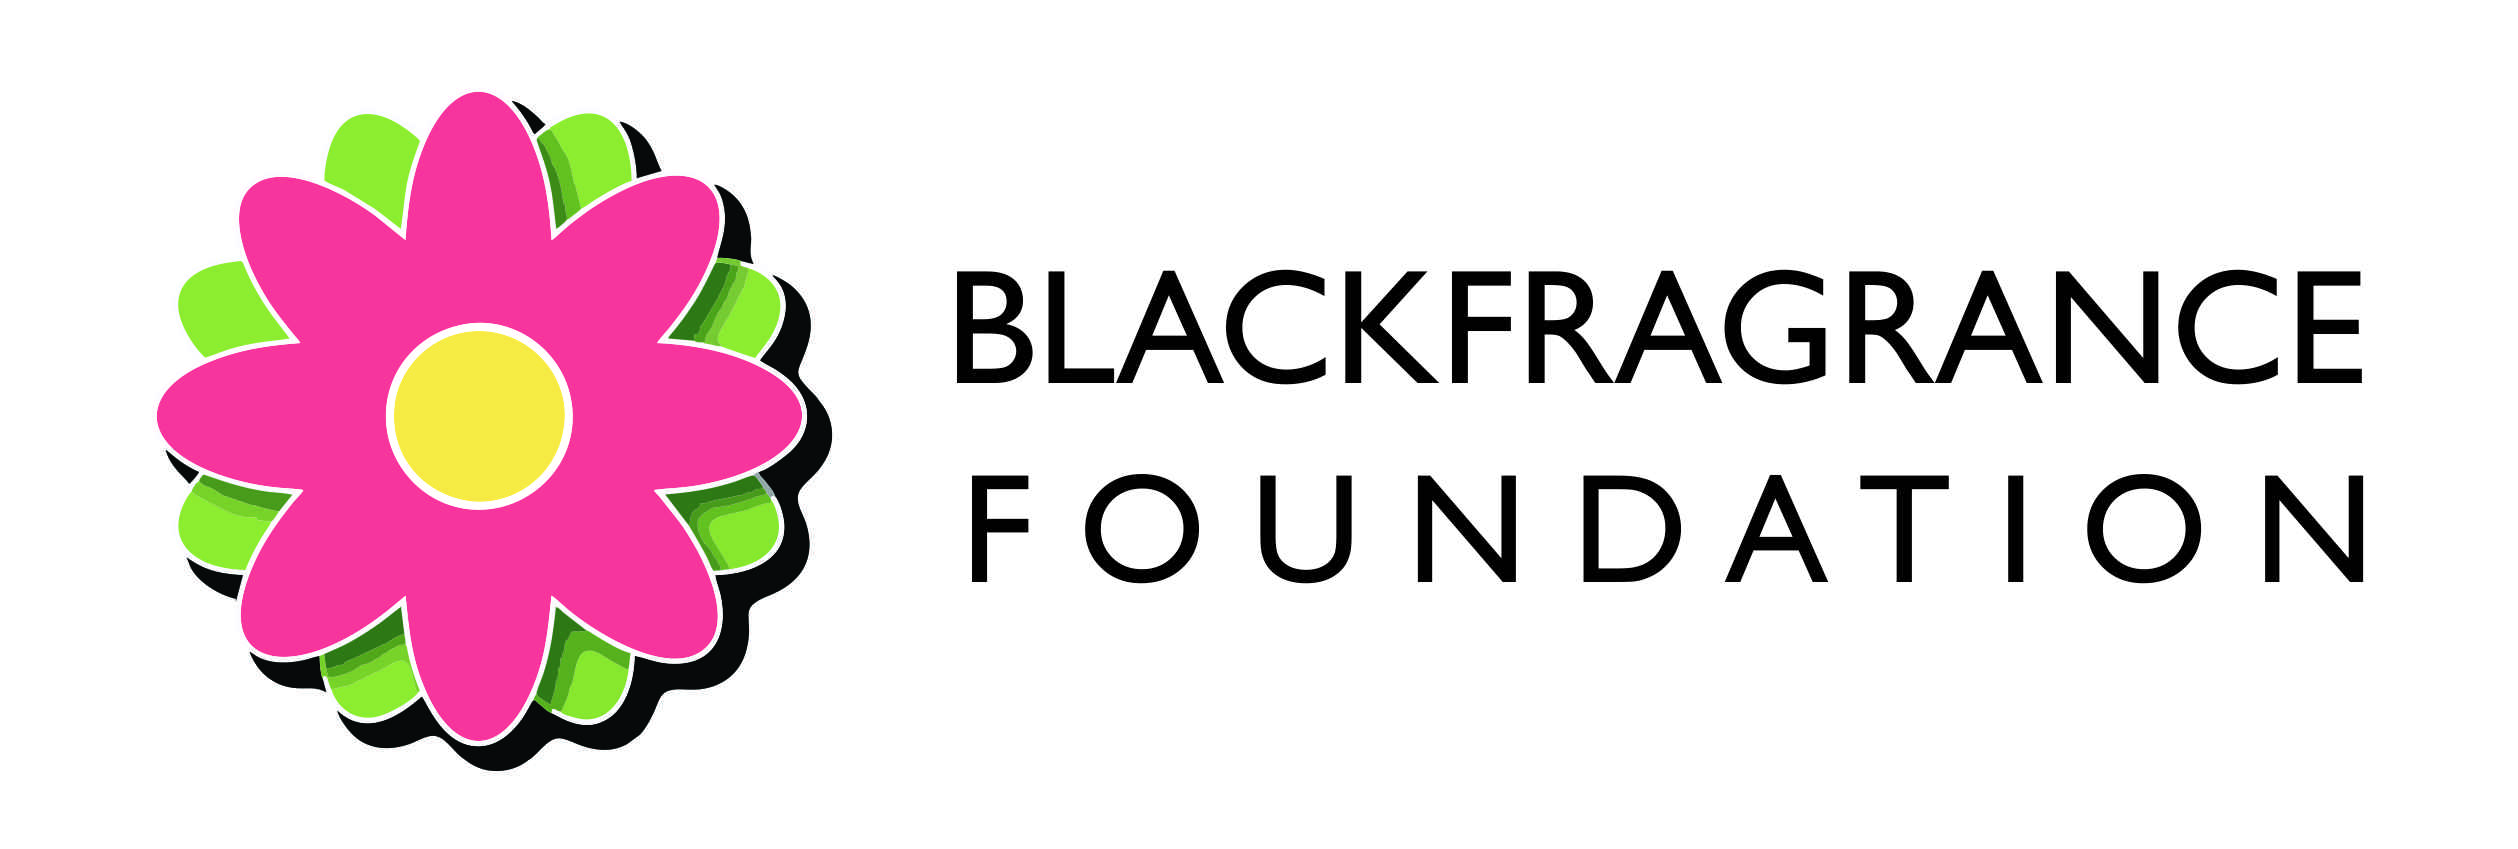 BLACKFRAGRANCE FOUNDATION